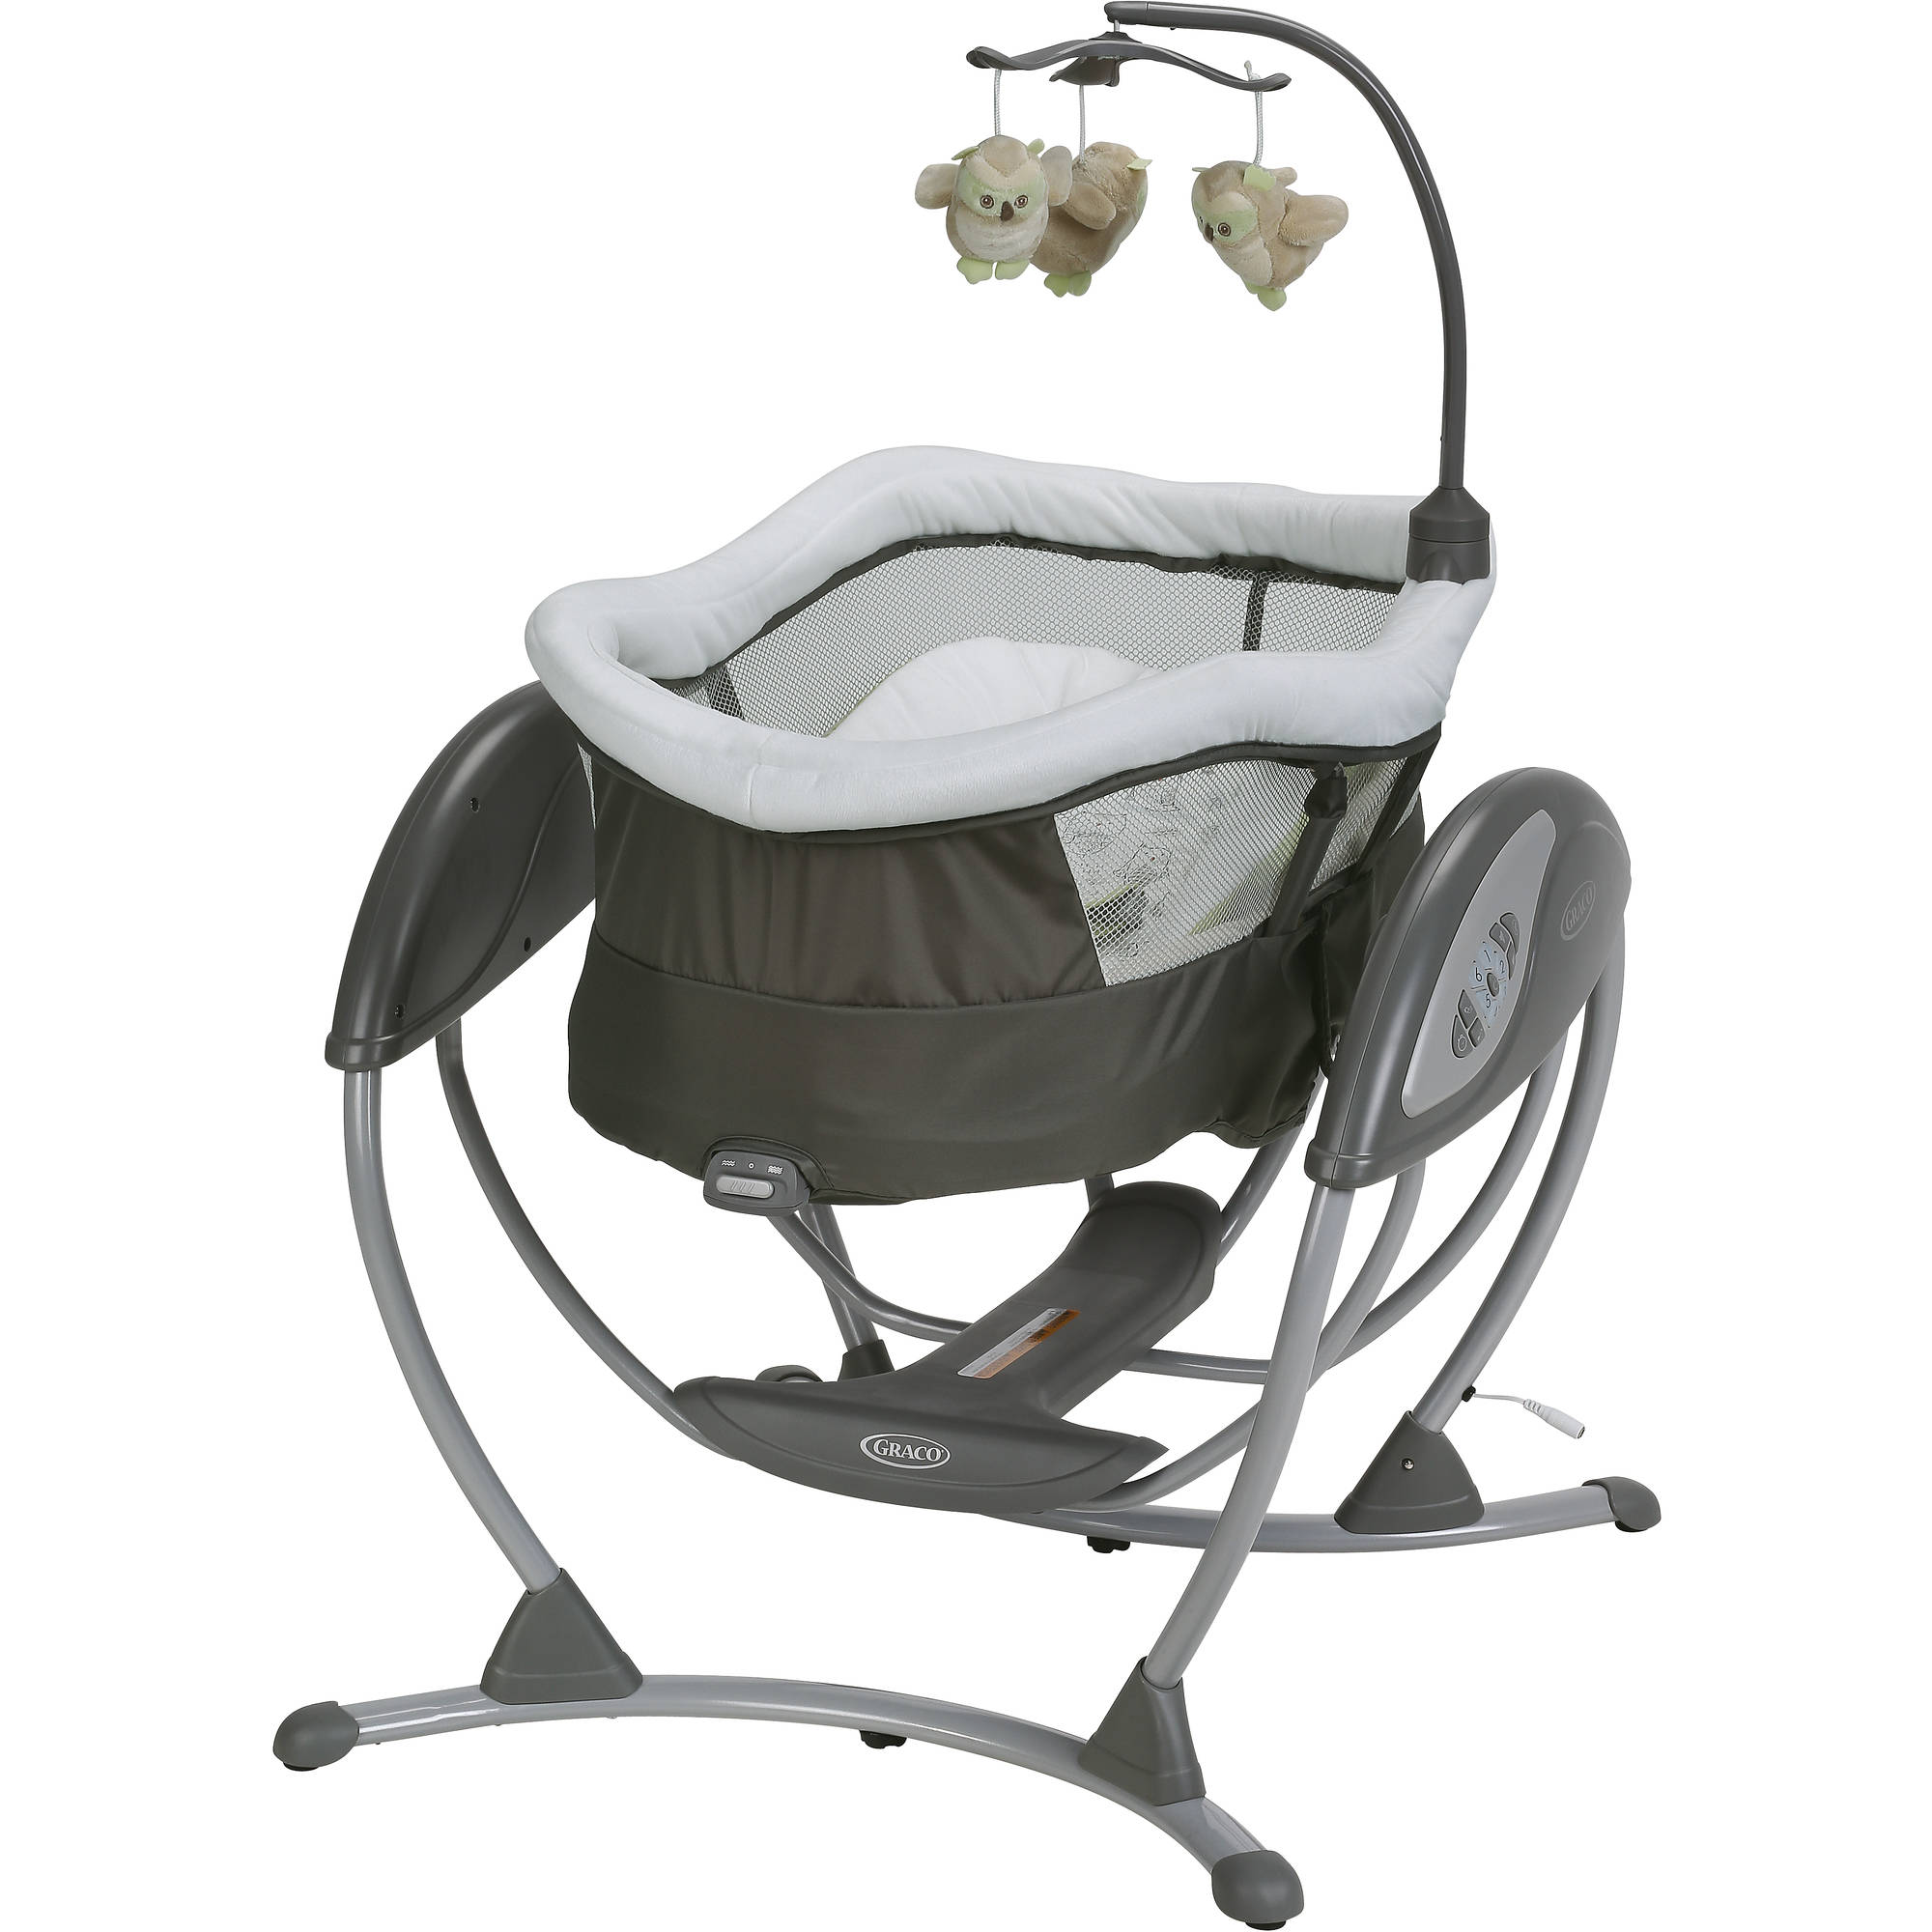 Graco DreamGlider Gliding Baby Swing and Sleeper, Percy by Graco